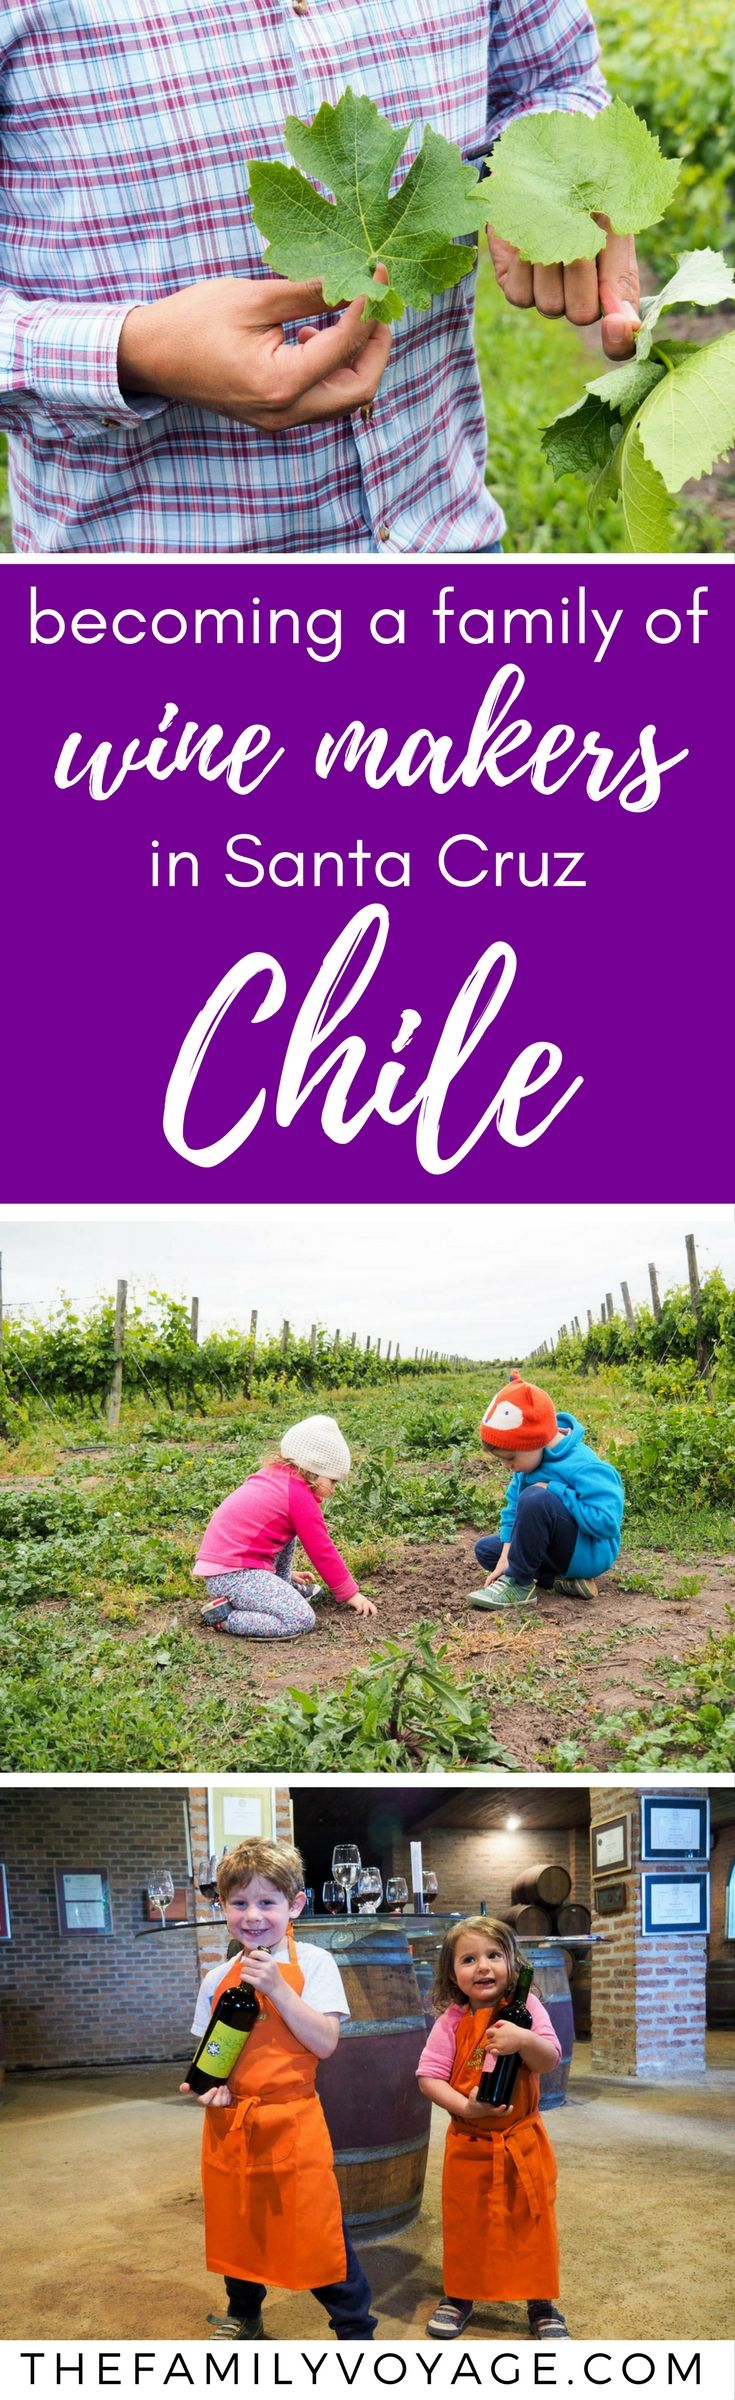 "Are you looking for a unique way to experience wine tasting, whether on your own or with a family? Check out the fun ""winemaker for a day"" at MontGras Vineyard in the Colchagua Valley of Chile! #travel #chile #colchagua #santacruz #wine #winetravel #foodtravel"